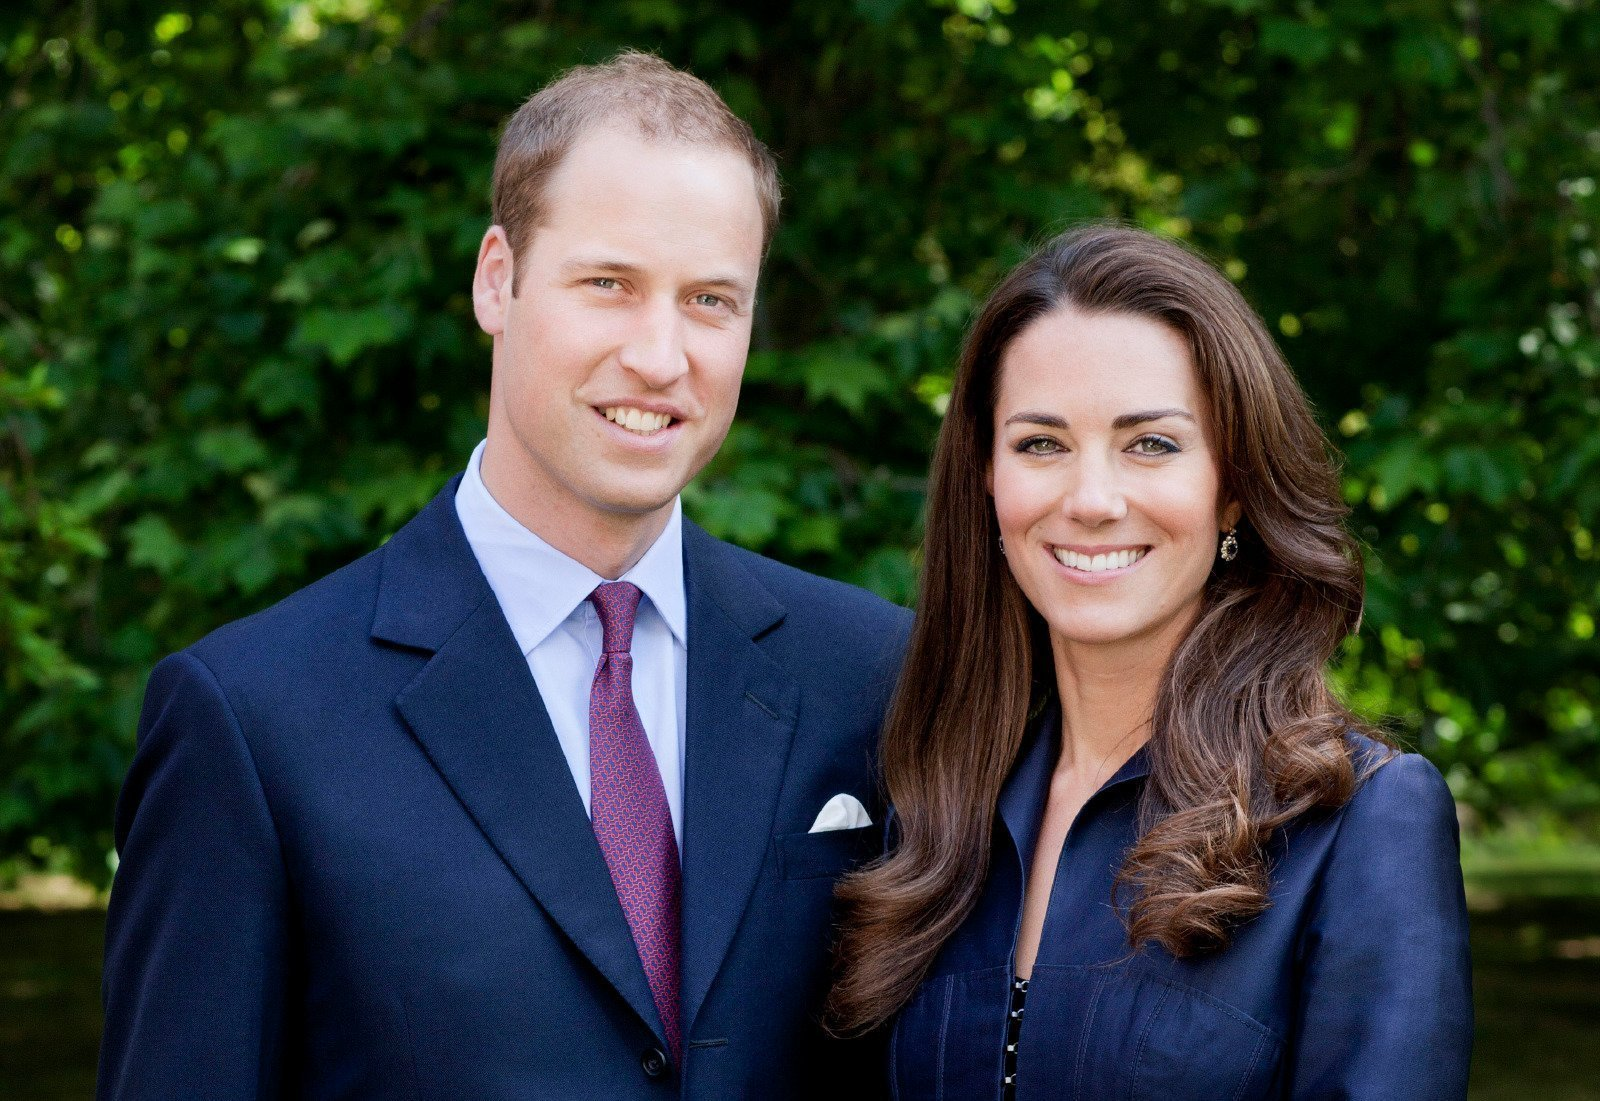 Prince William and Kate Middleton pose for a portrait in the Garden's of Clarence House on June 3, 2011. | Source: Getty Images